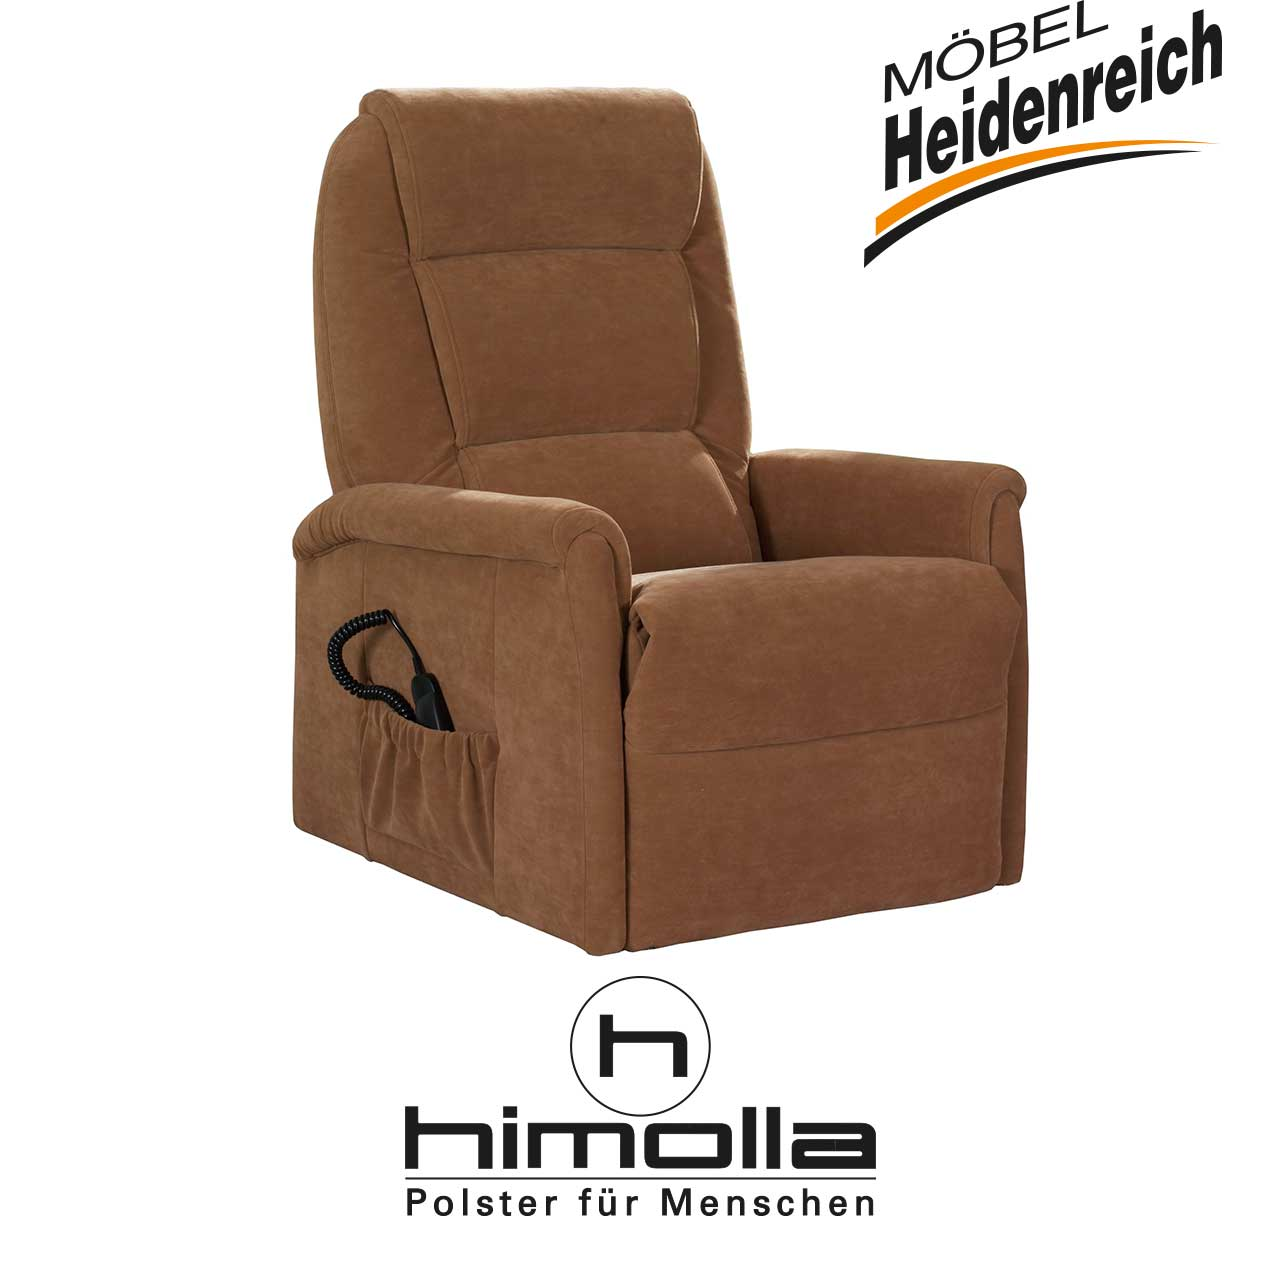 himolla sessel 9773 26g himolla marken m bel heidenreich. Black Bedroom Furniture Sets. Home Design Ideas